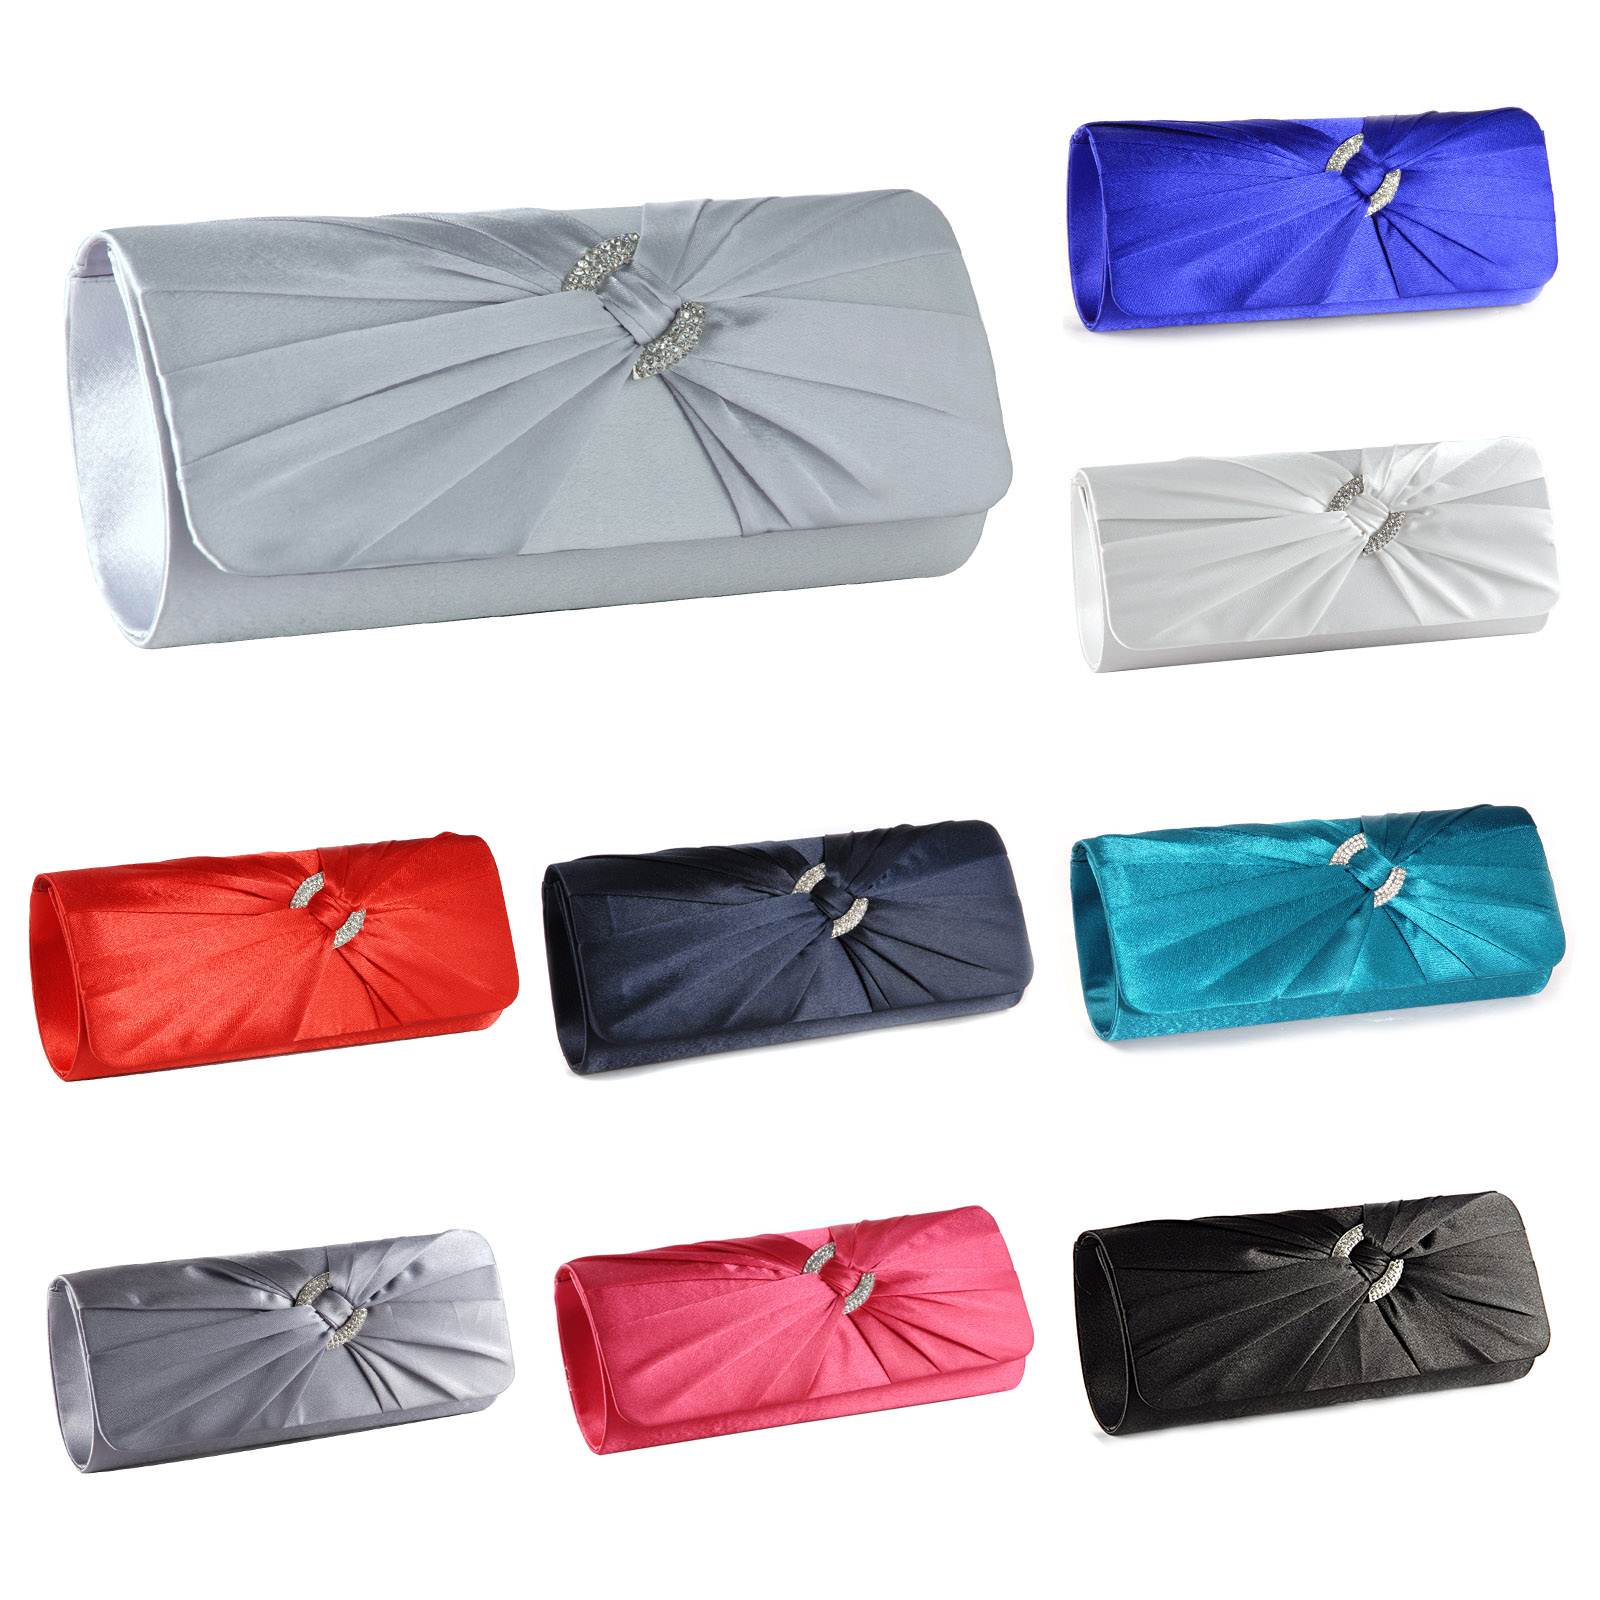 52ecb593ffa New Satin Diamante Pleated Evening Clutch Bag Bridal Handbag Prom Purse